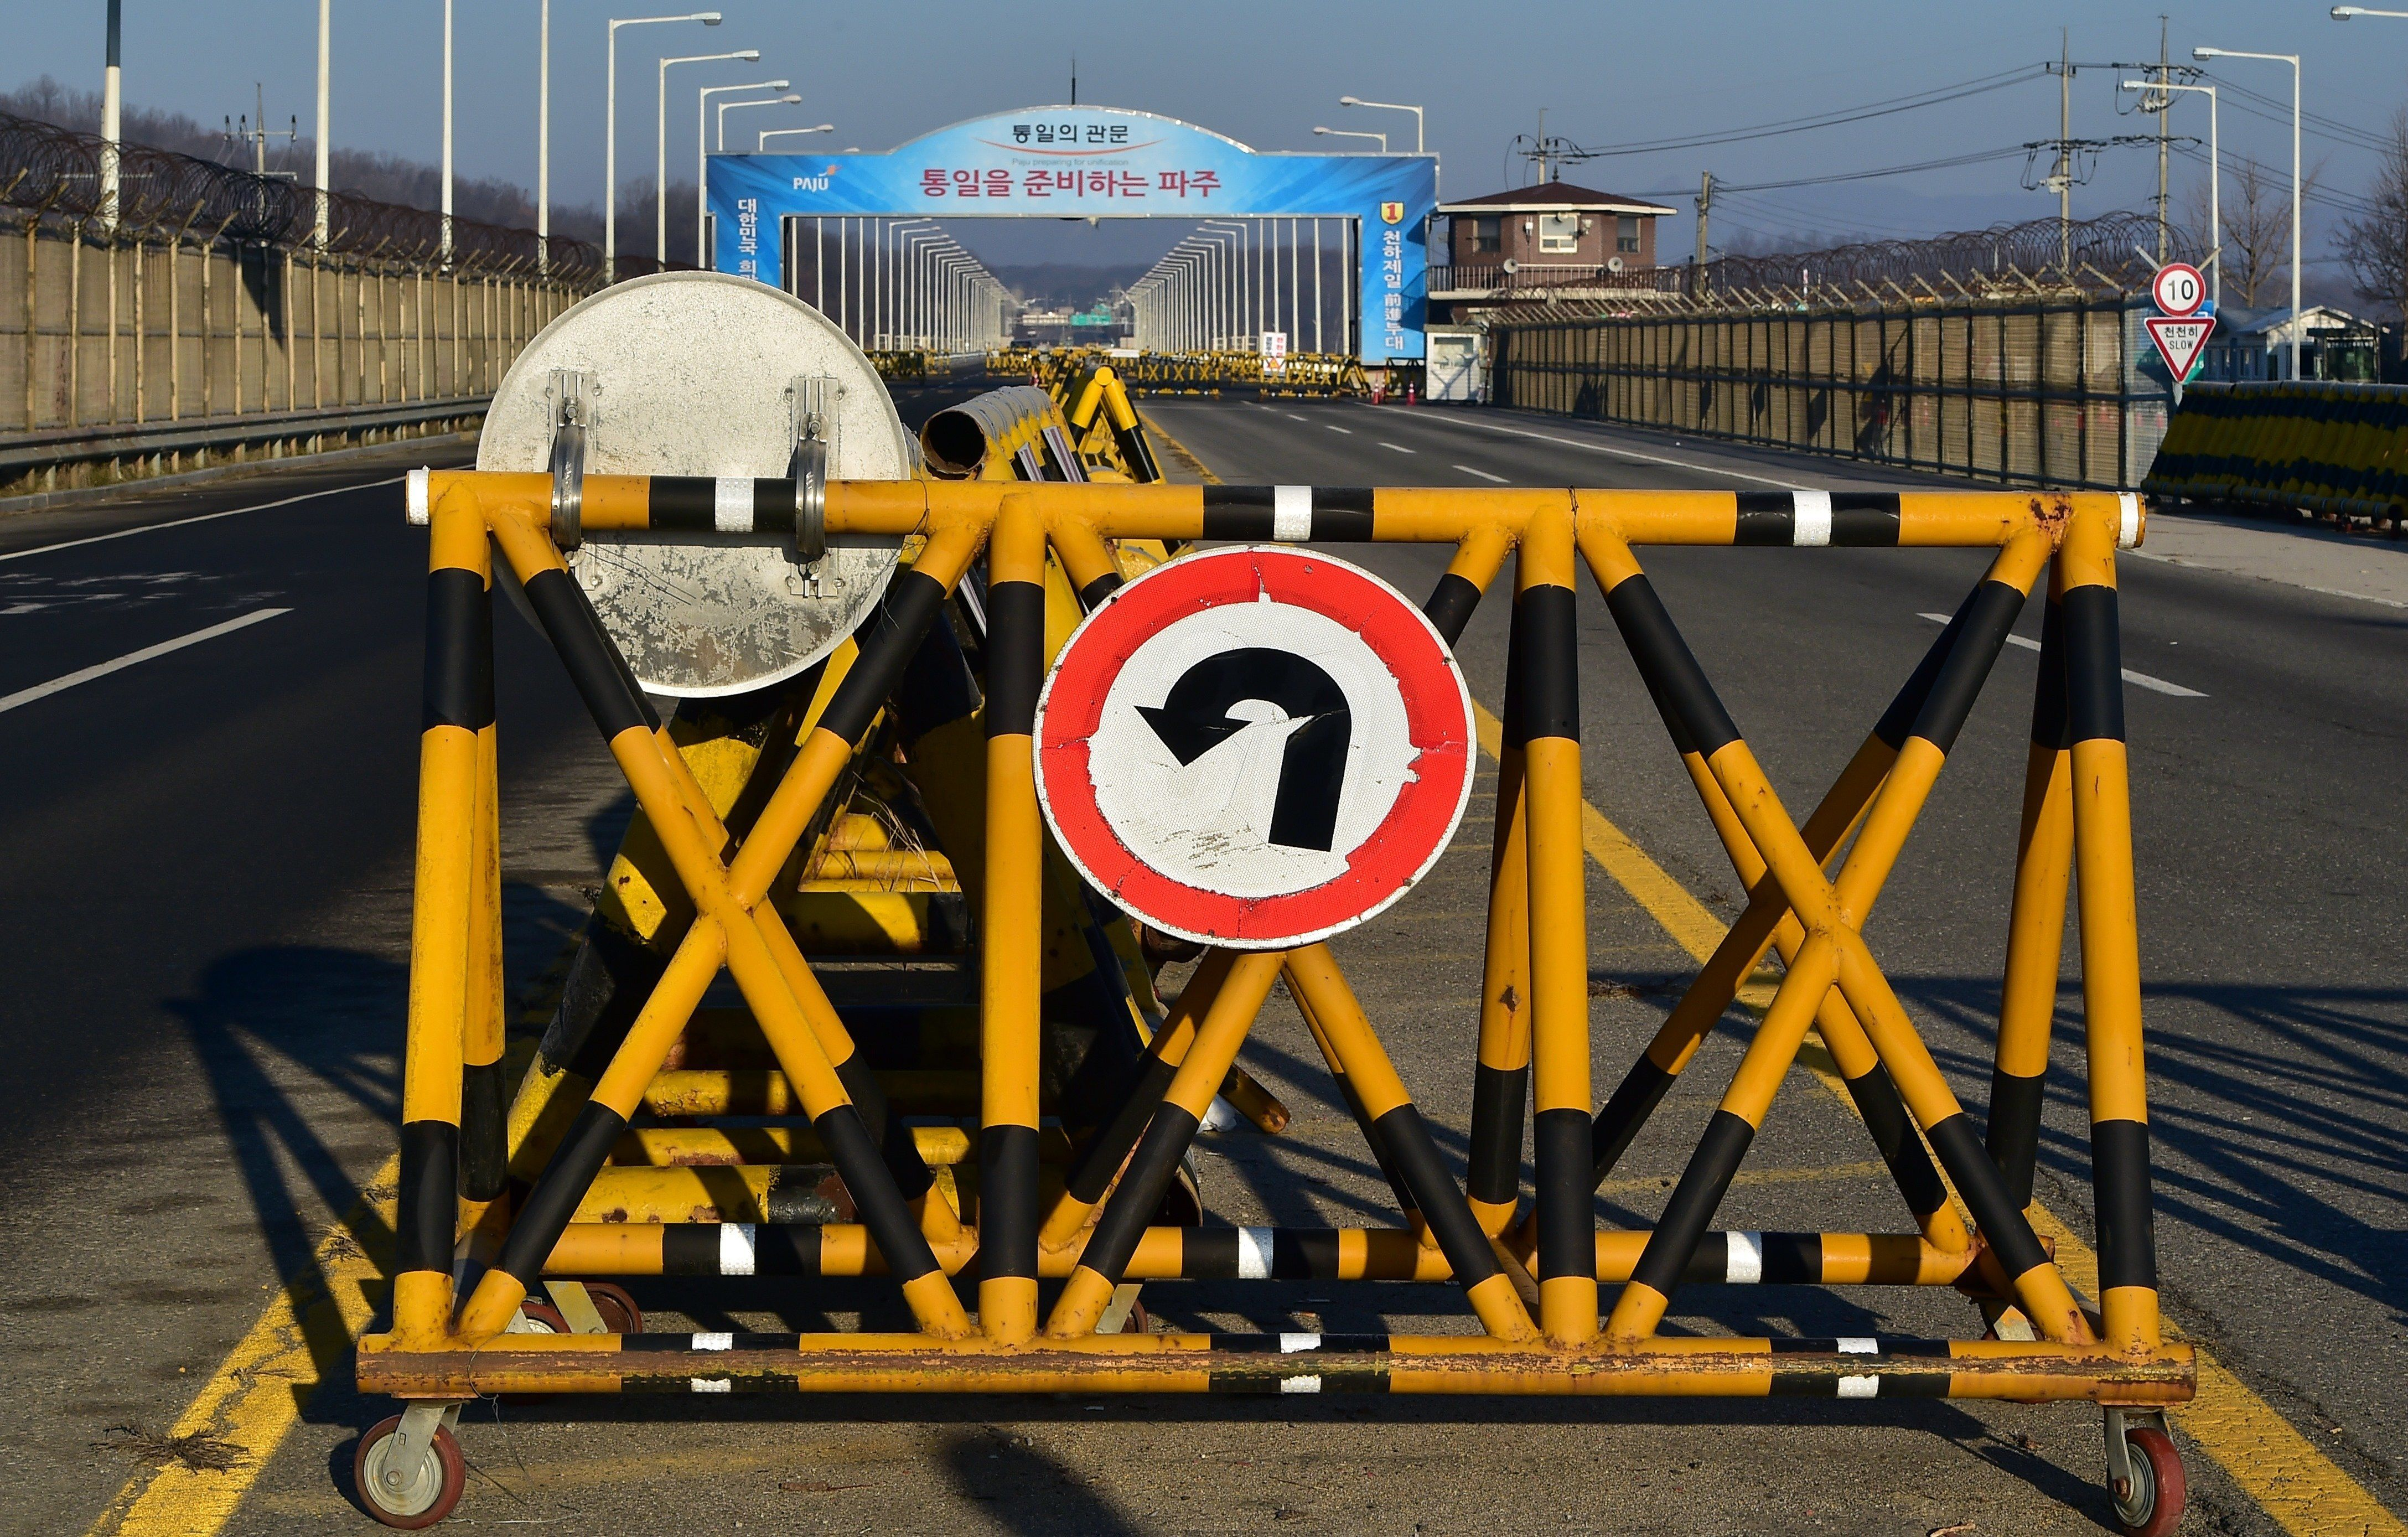 South Koreaplans tosuspend operations at a jointly run factory park just inside North Koreato stop funds fr